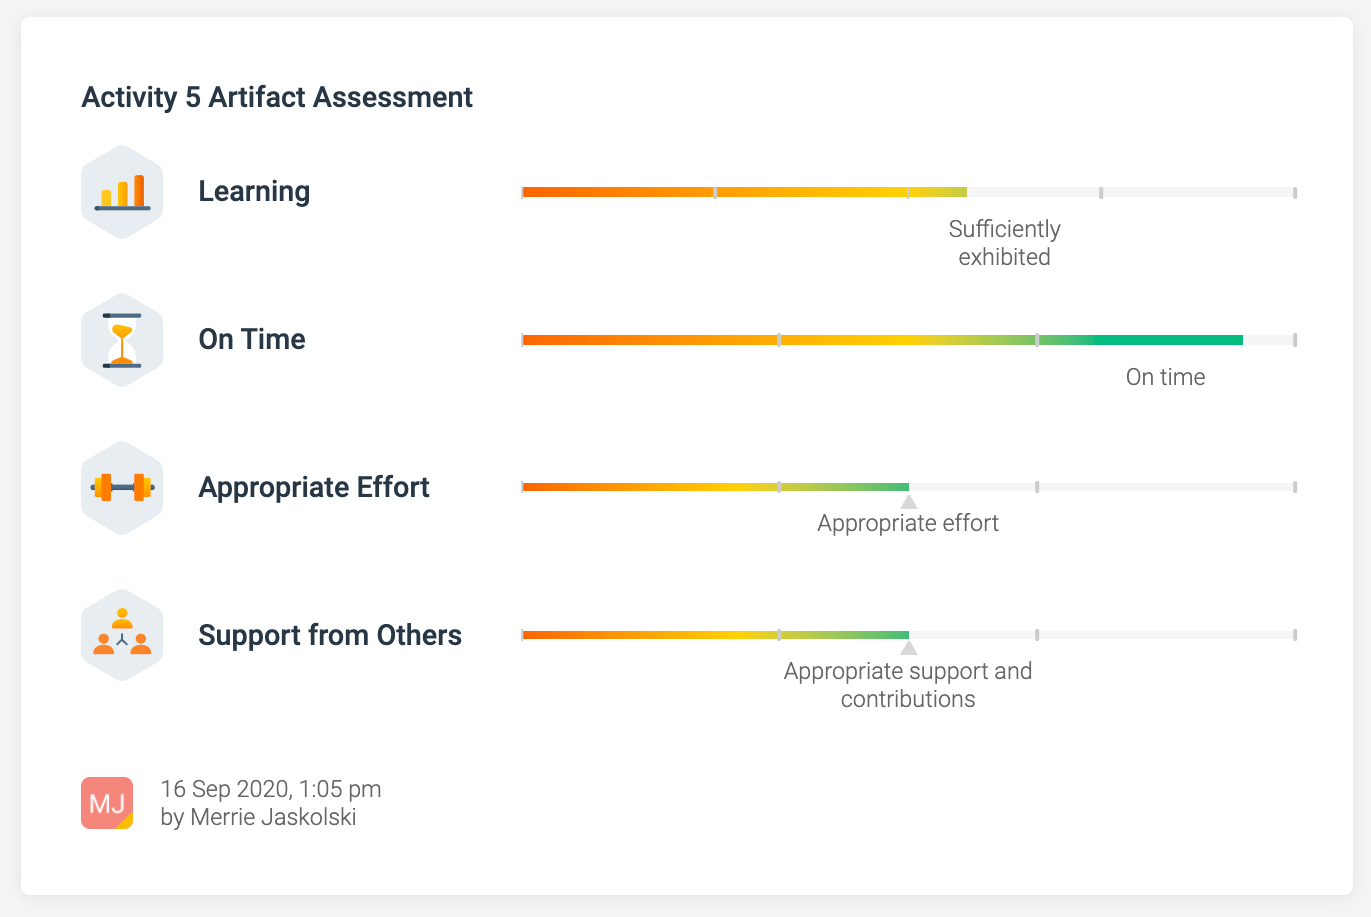 A sample artifact assessment screenshot shows a mentor's assessment of a student's work product on learning, timeliness, effort, and support from others.